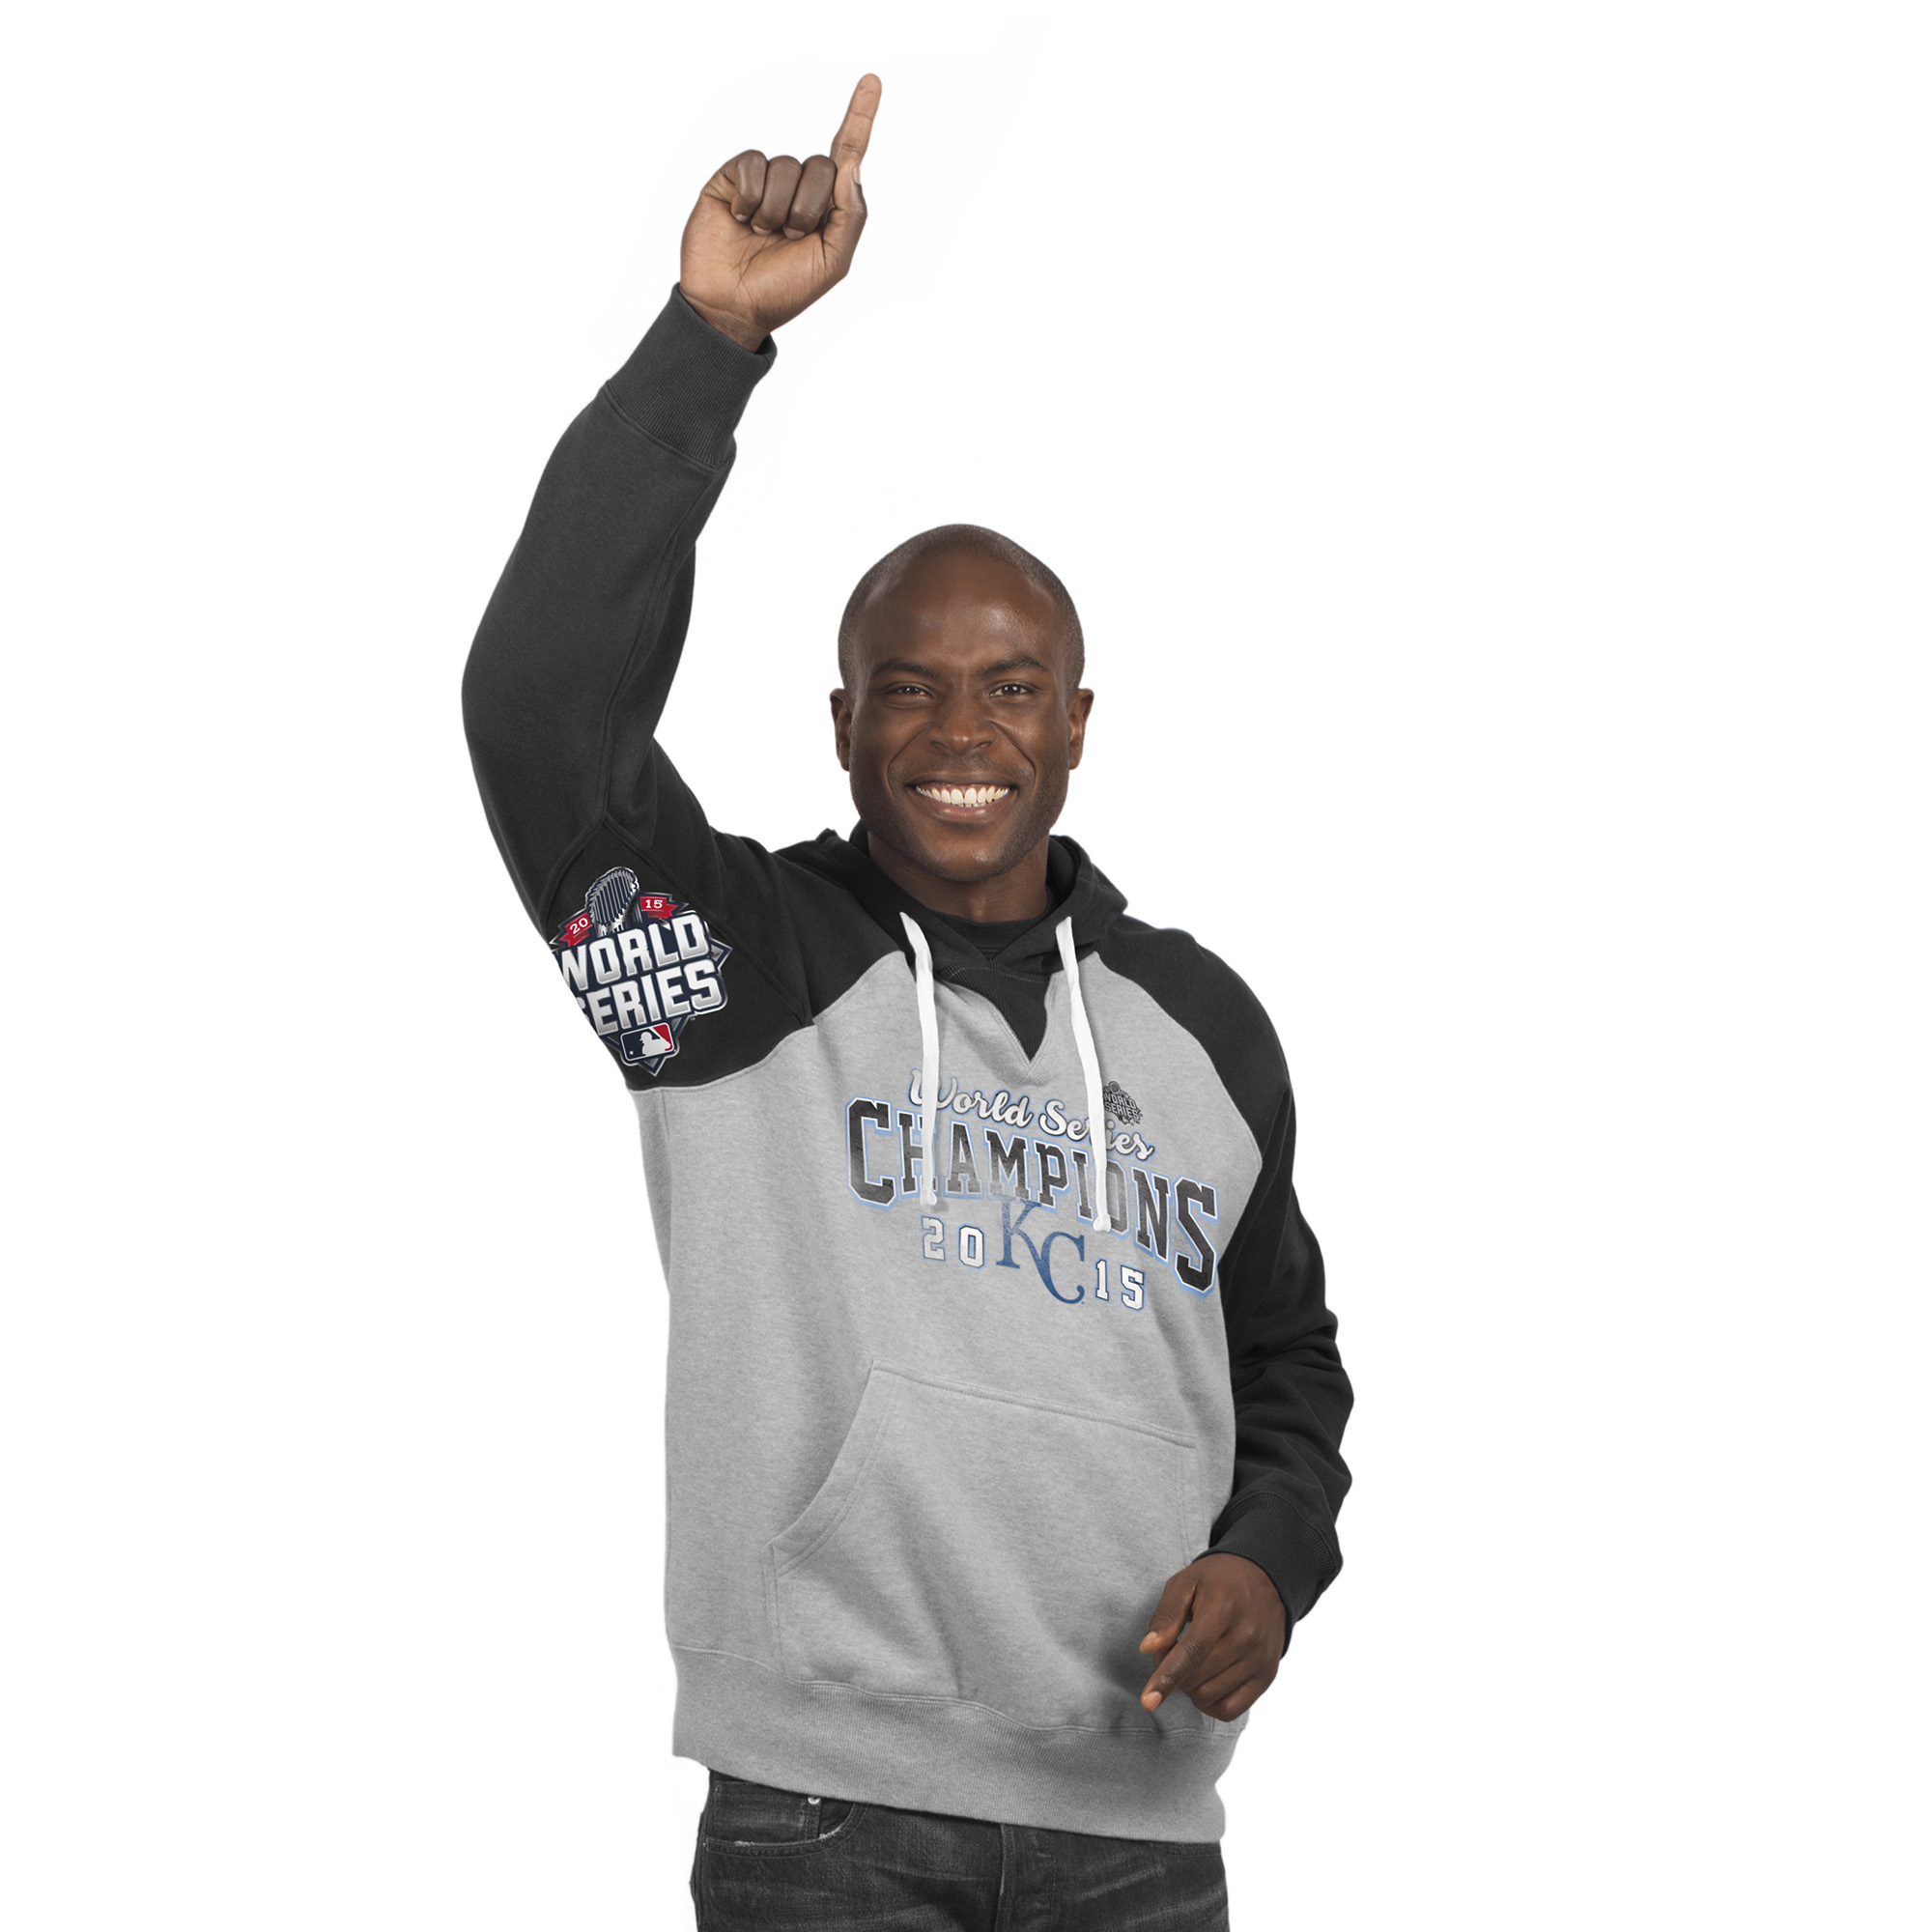 Kansas City Royals 2015 World Series Champions Hands High Sueded Fleece Pullover Hoodie - Gray